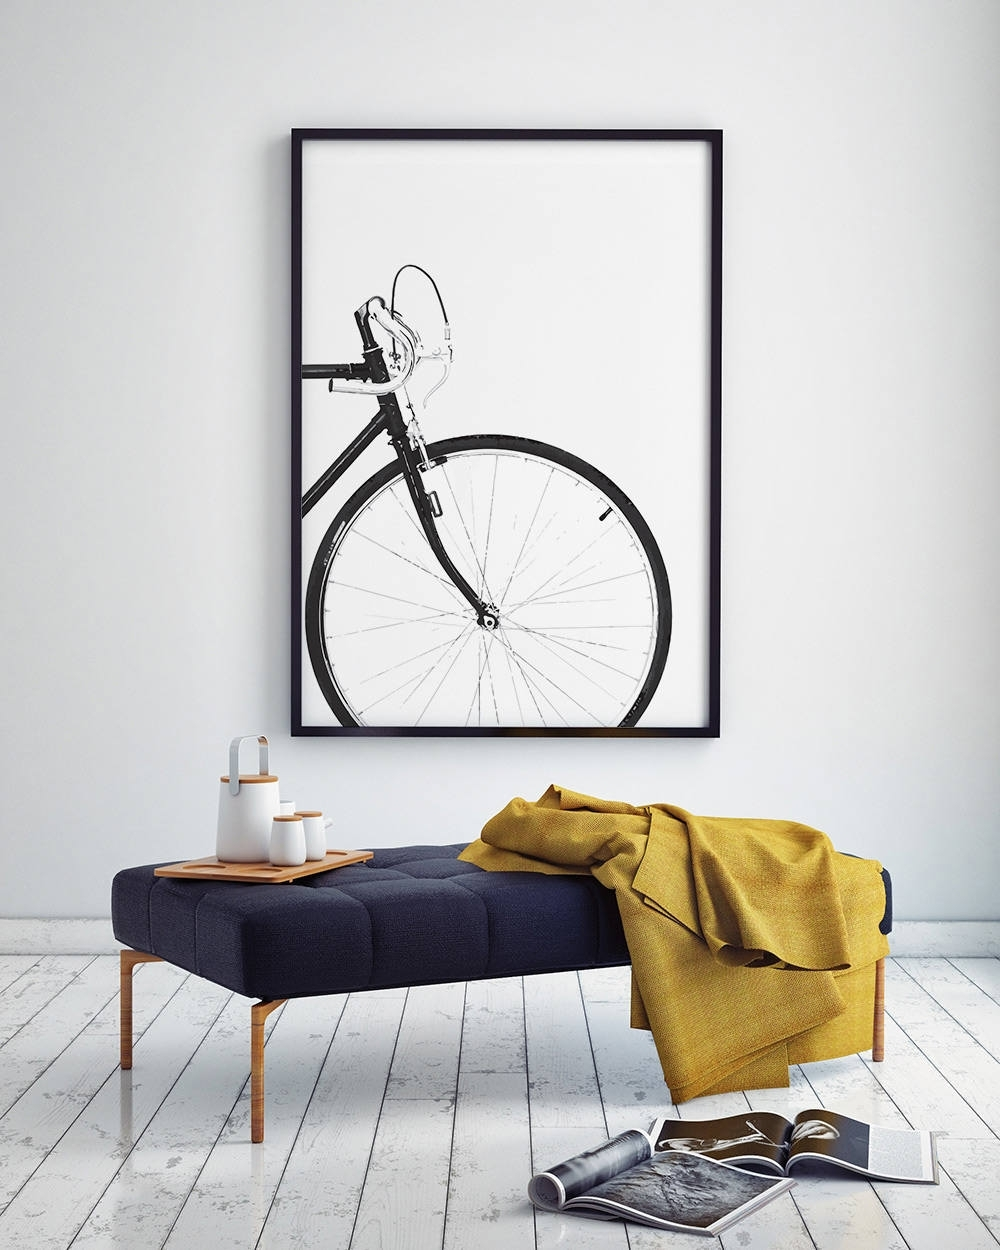 Cycling Poster, Bicycle Poster, Bike Print, Bicycle Wall Art Pertaining To Current Cycling Wall Art (View 3 of 15)